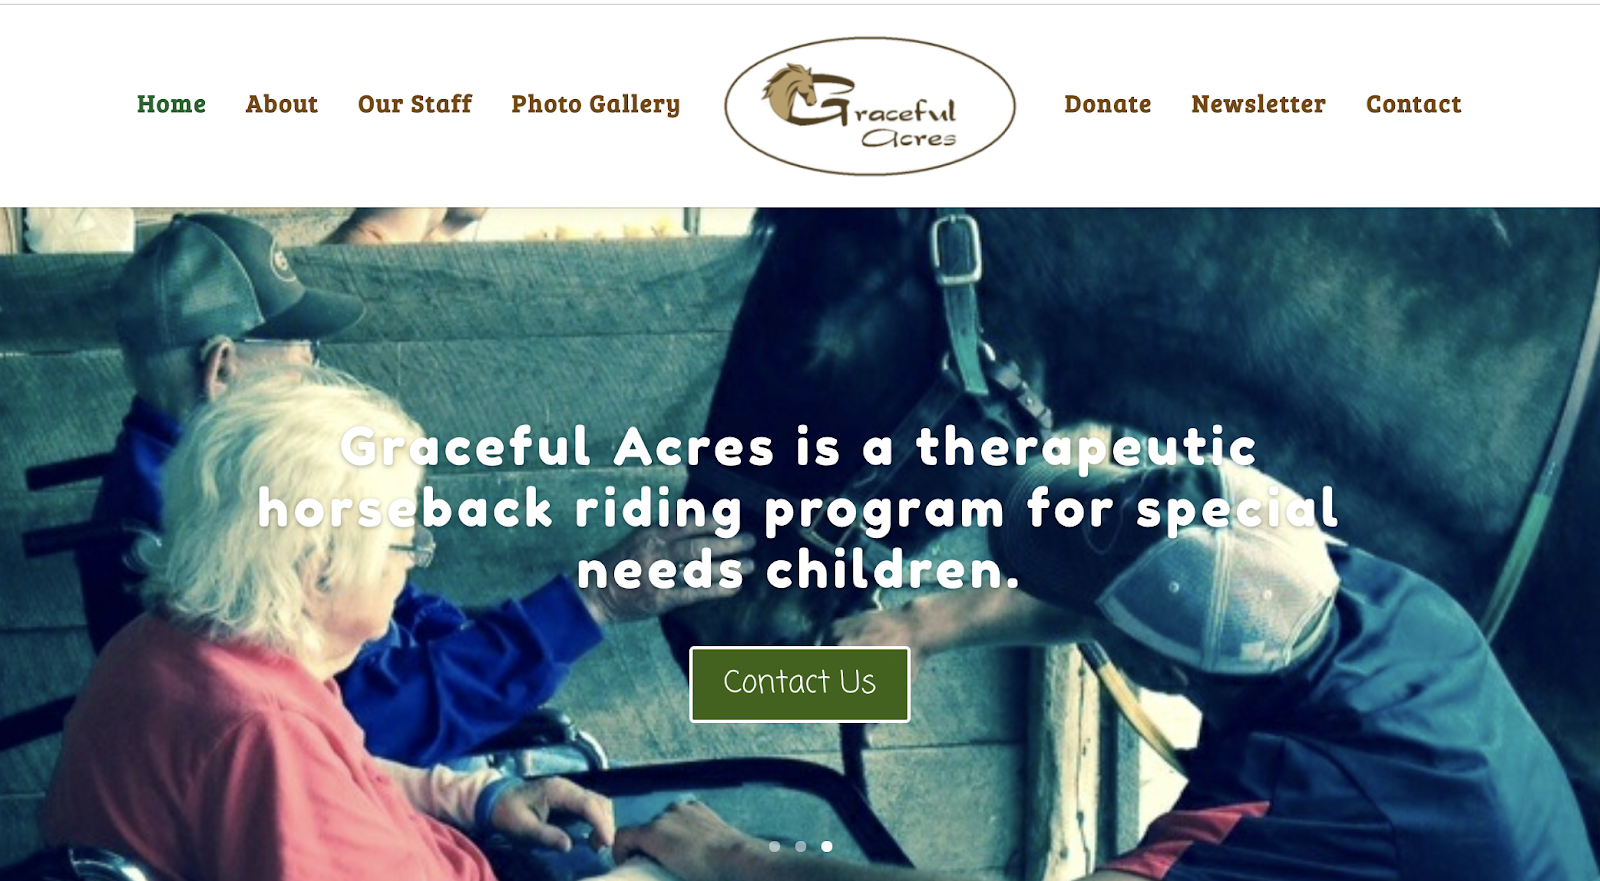 graceful acres nonprofit website